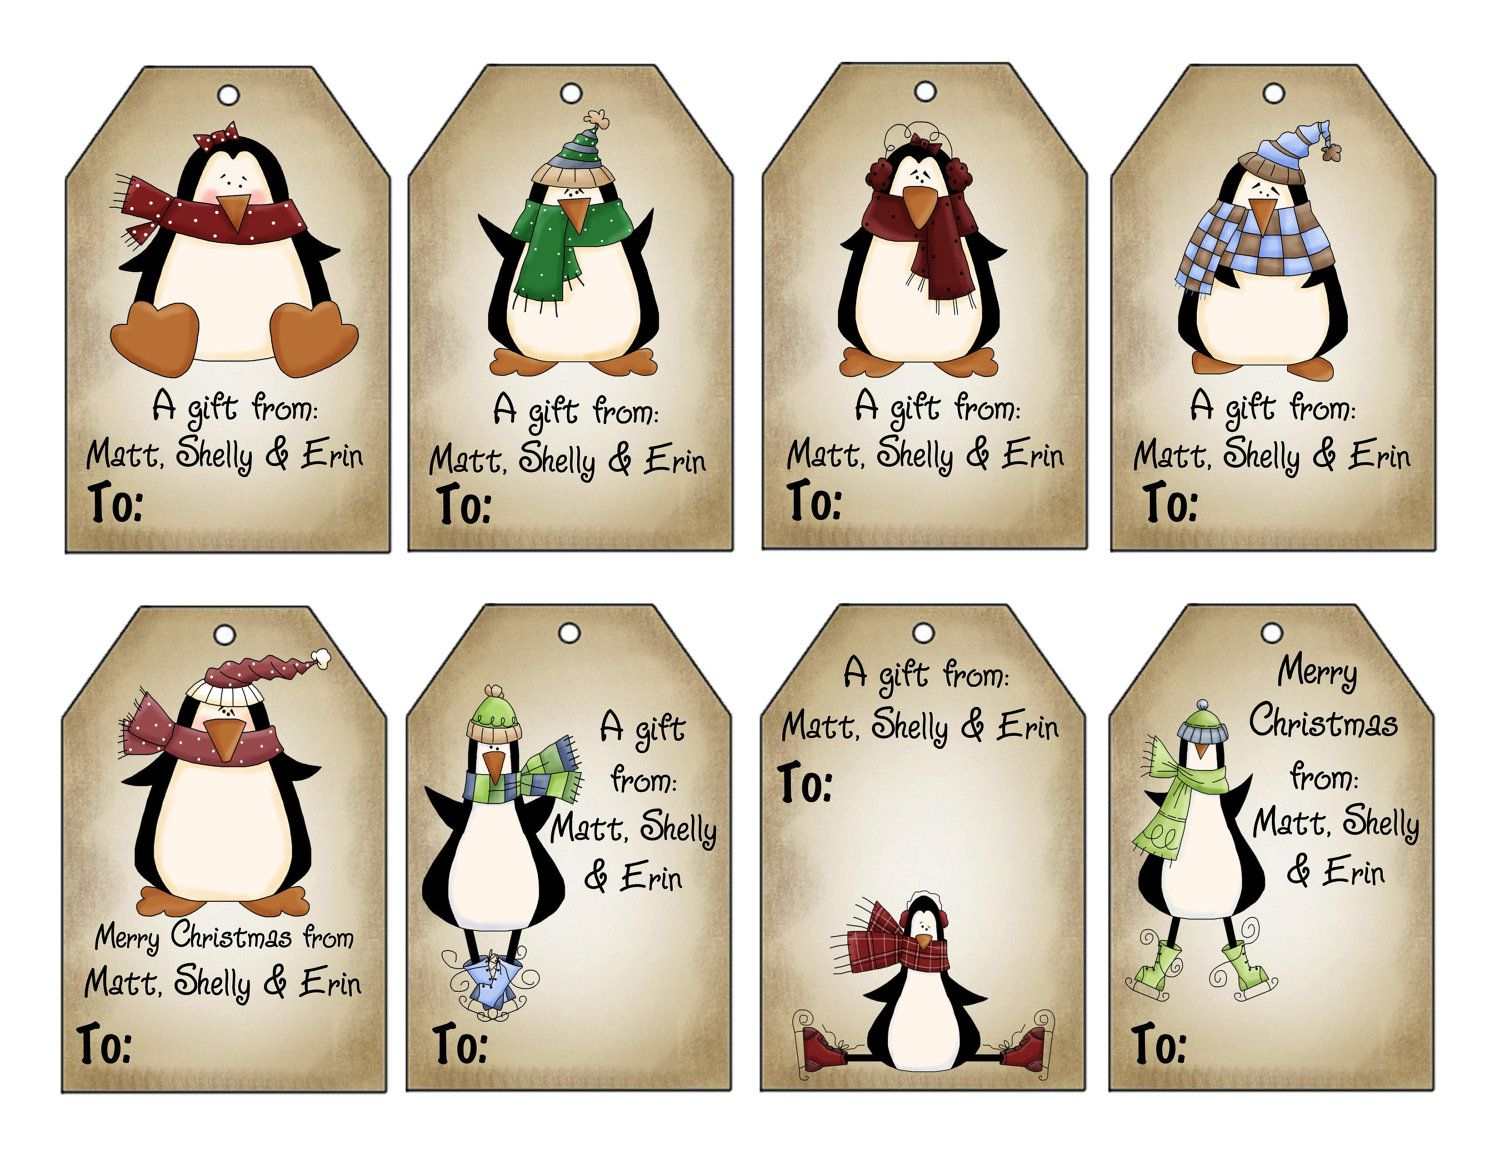 Tags google search tages bookmark pinterest bookmarks printable personalized winter penguins christmas gift tag set penguins personalized gift tags by swell printing negle Images